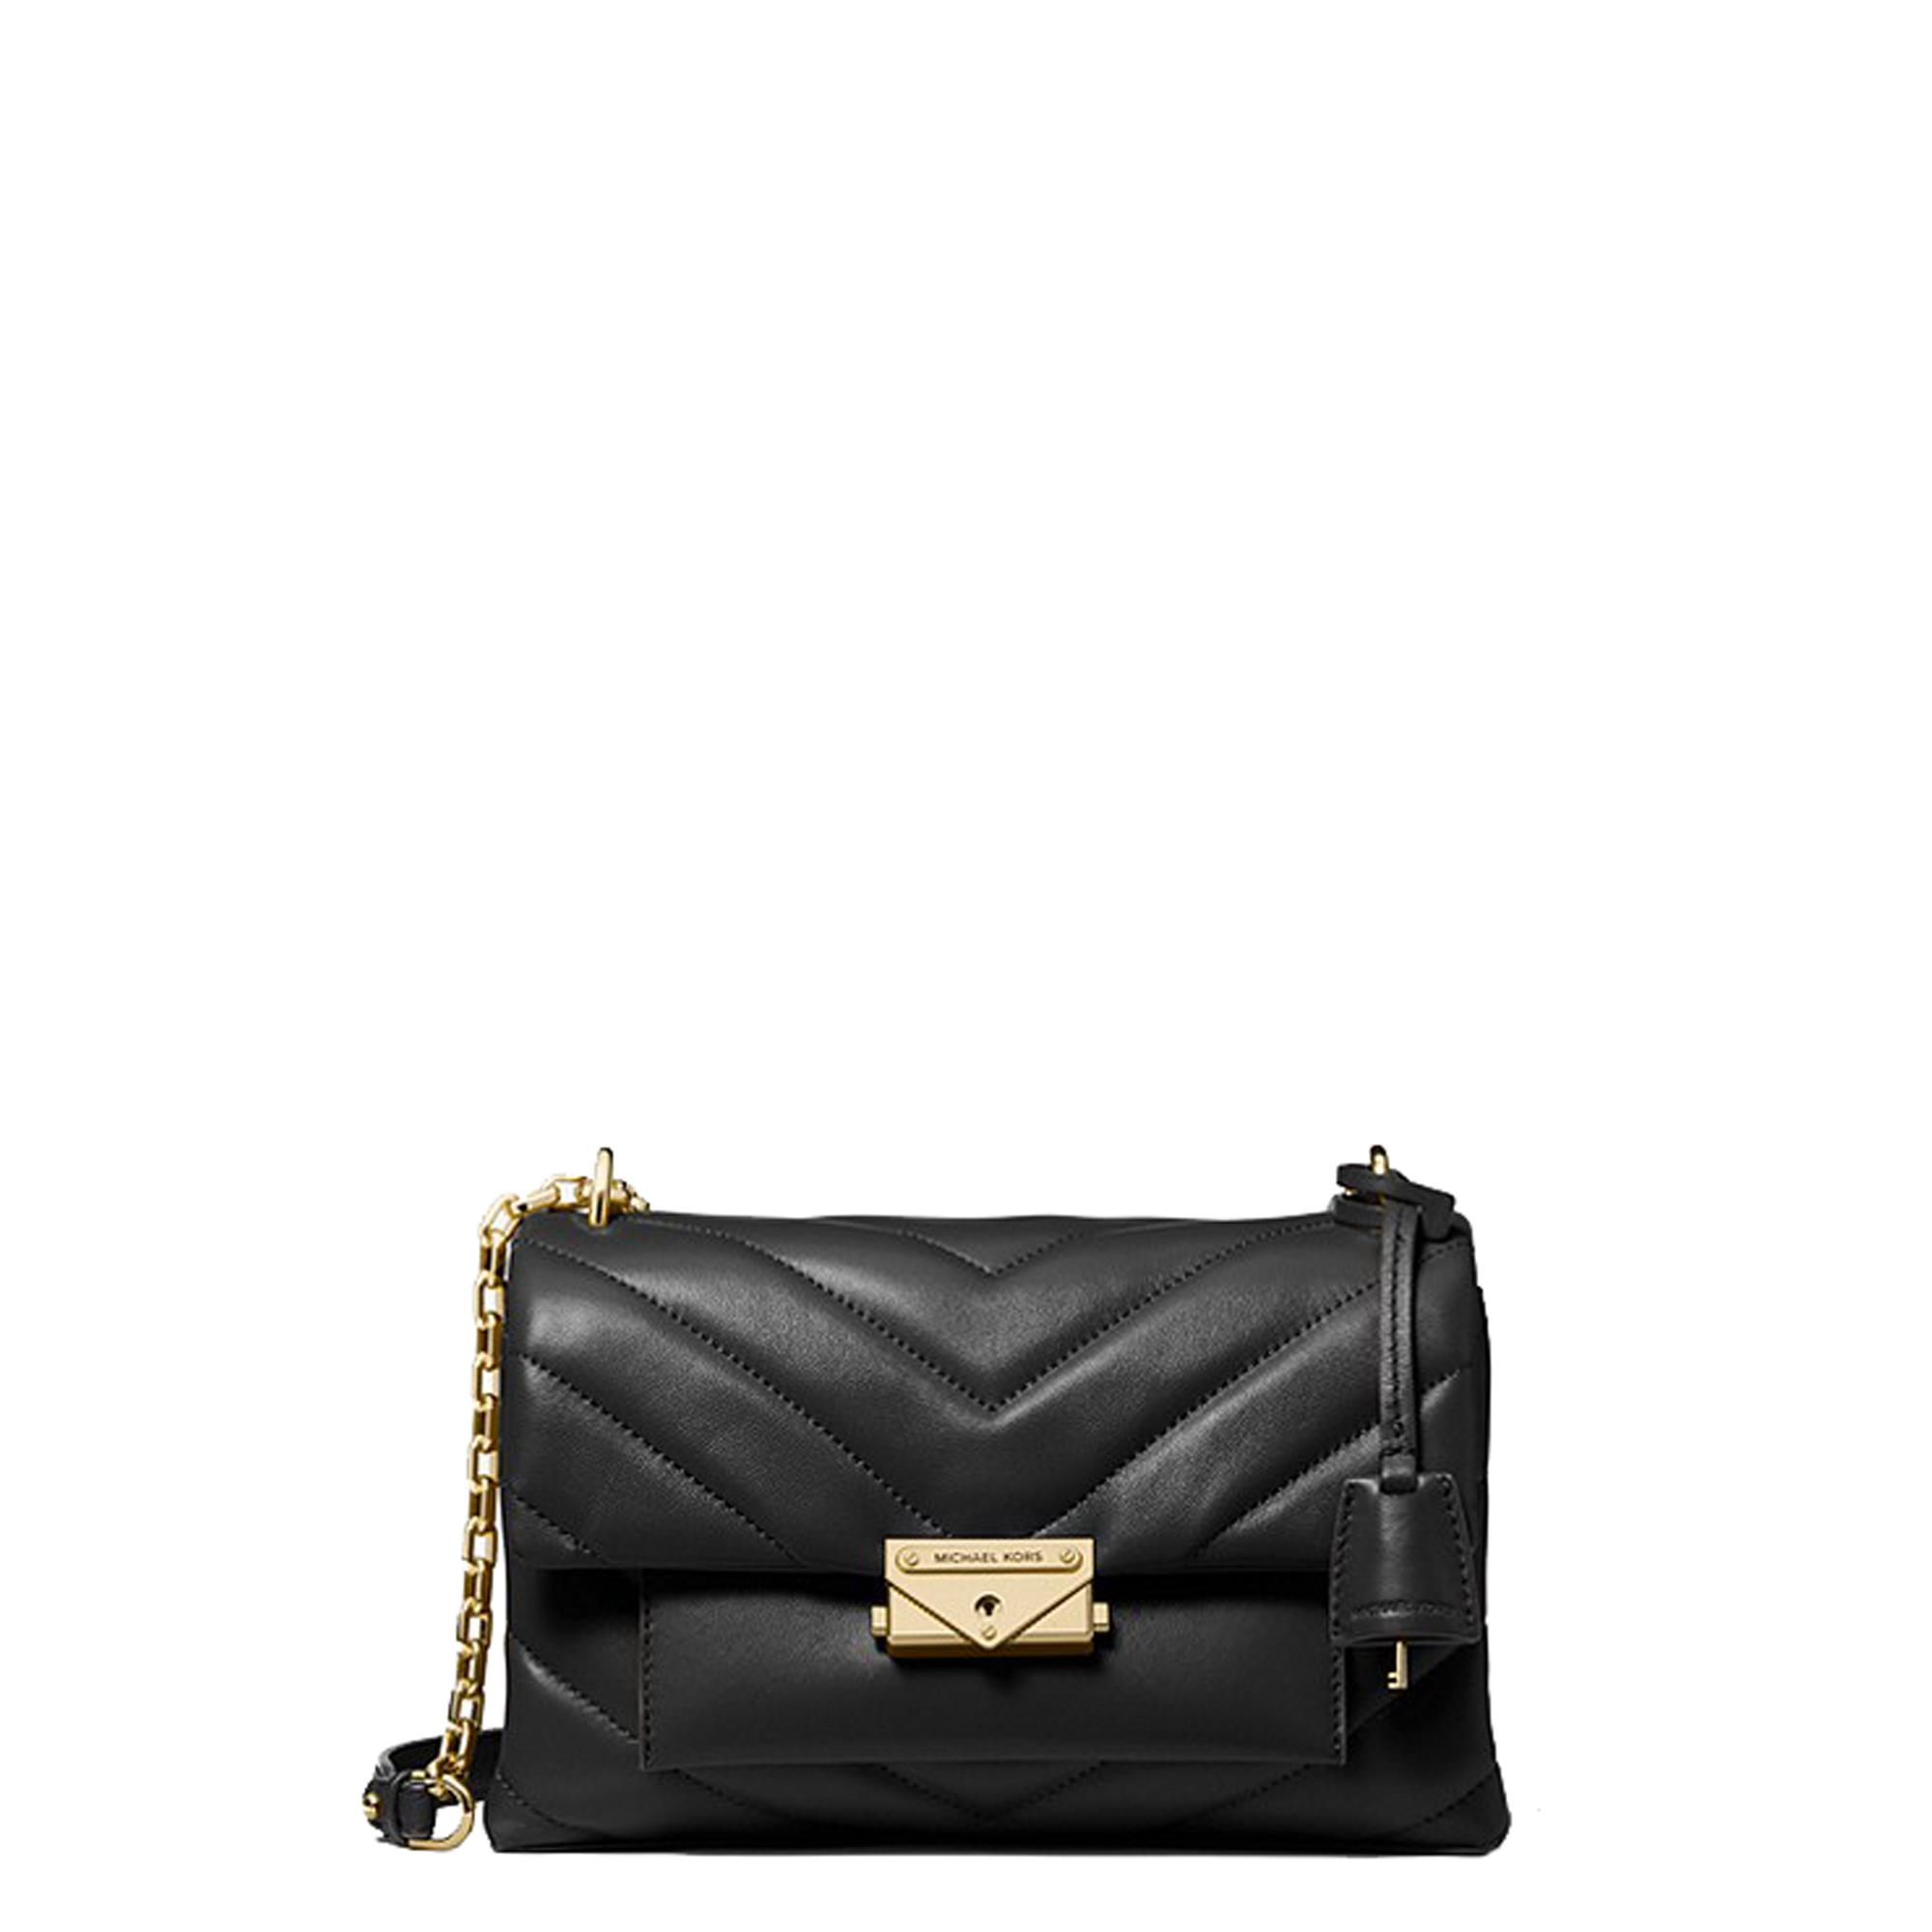 Michael KorsCece Medium Chain Shoulderbag Black